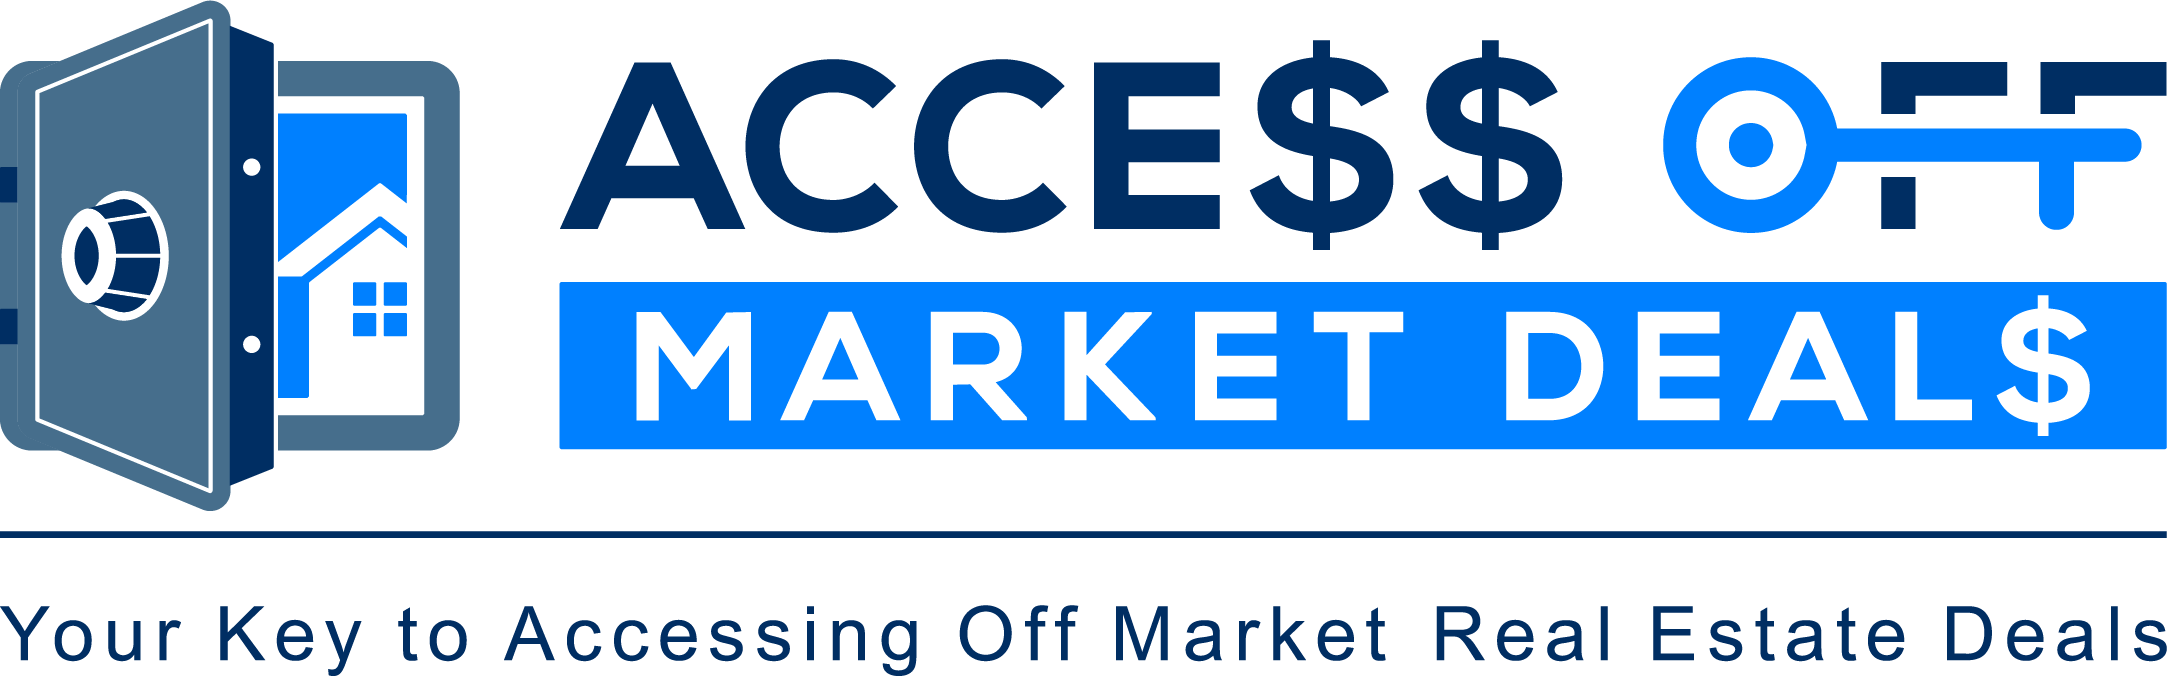 Access Off Market Deals